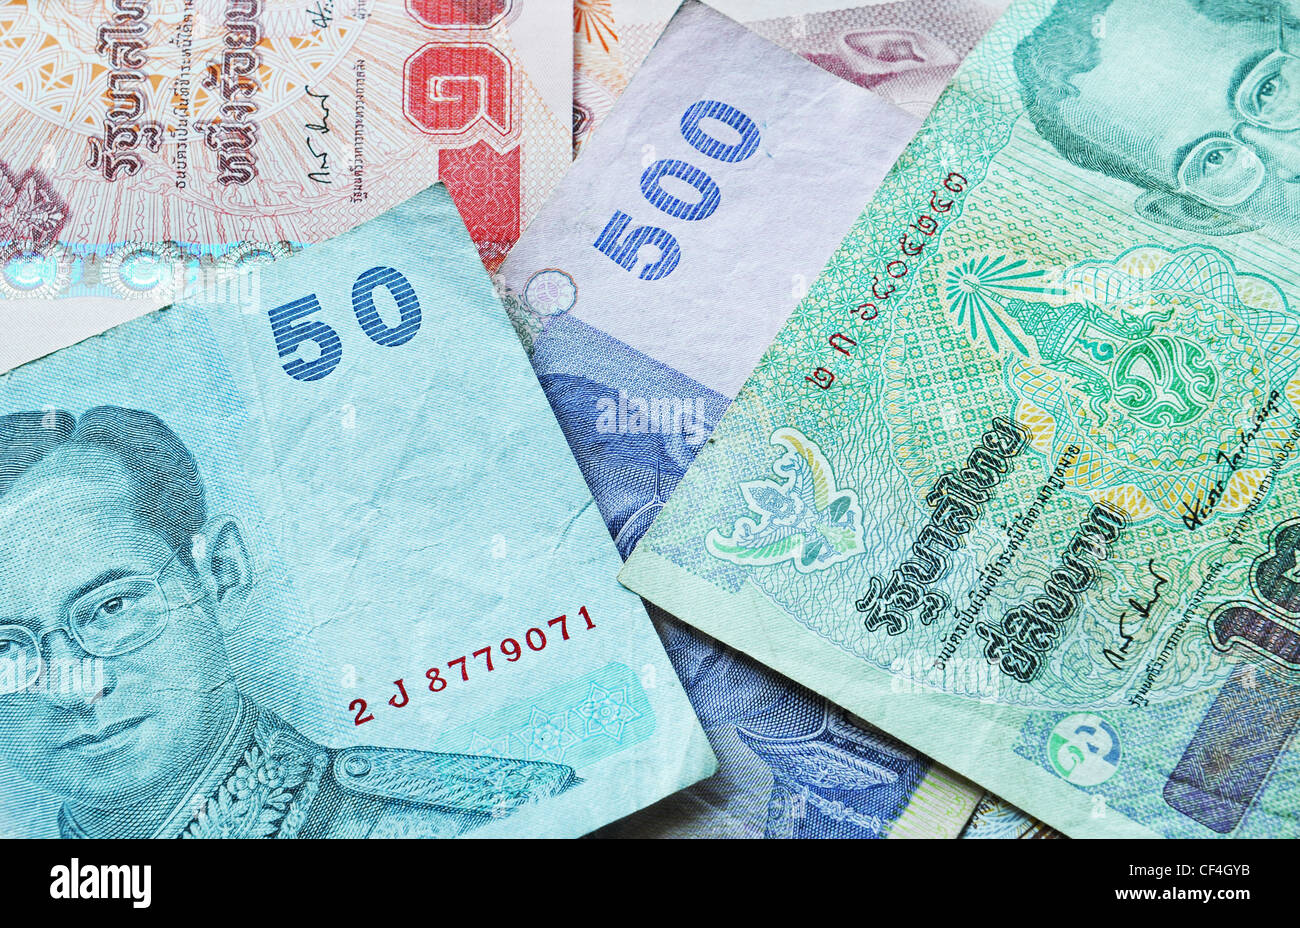 Baht is the currency of Thailand - Stock Image